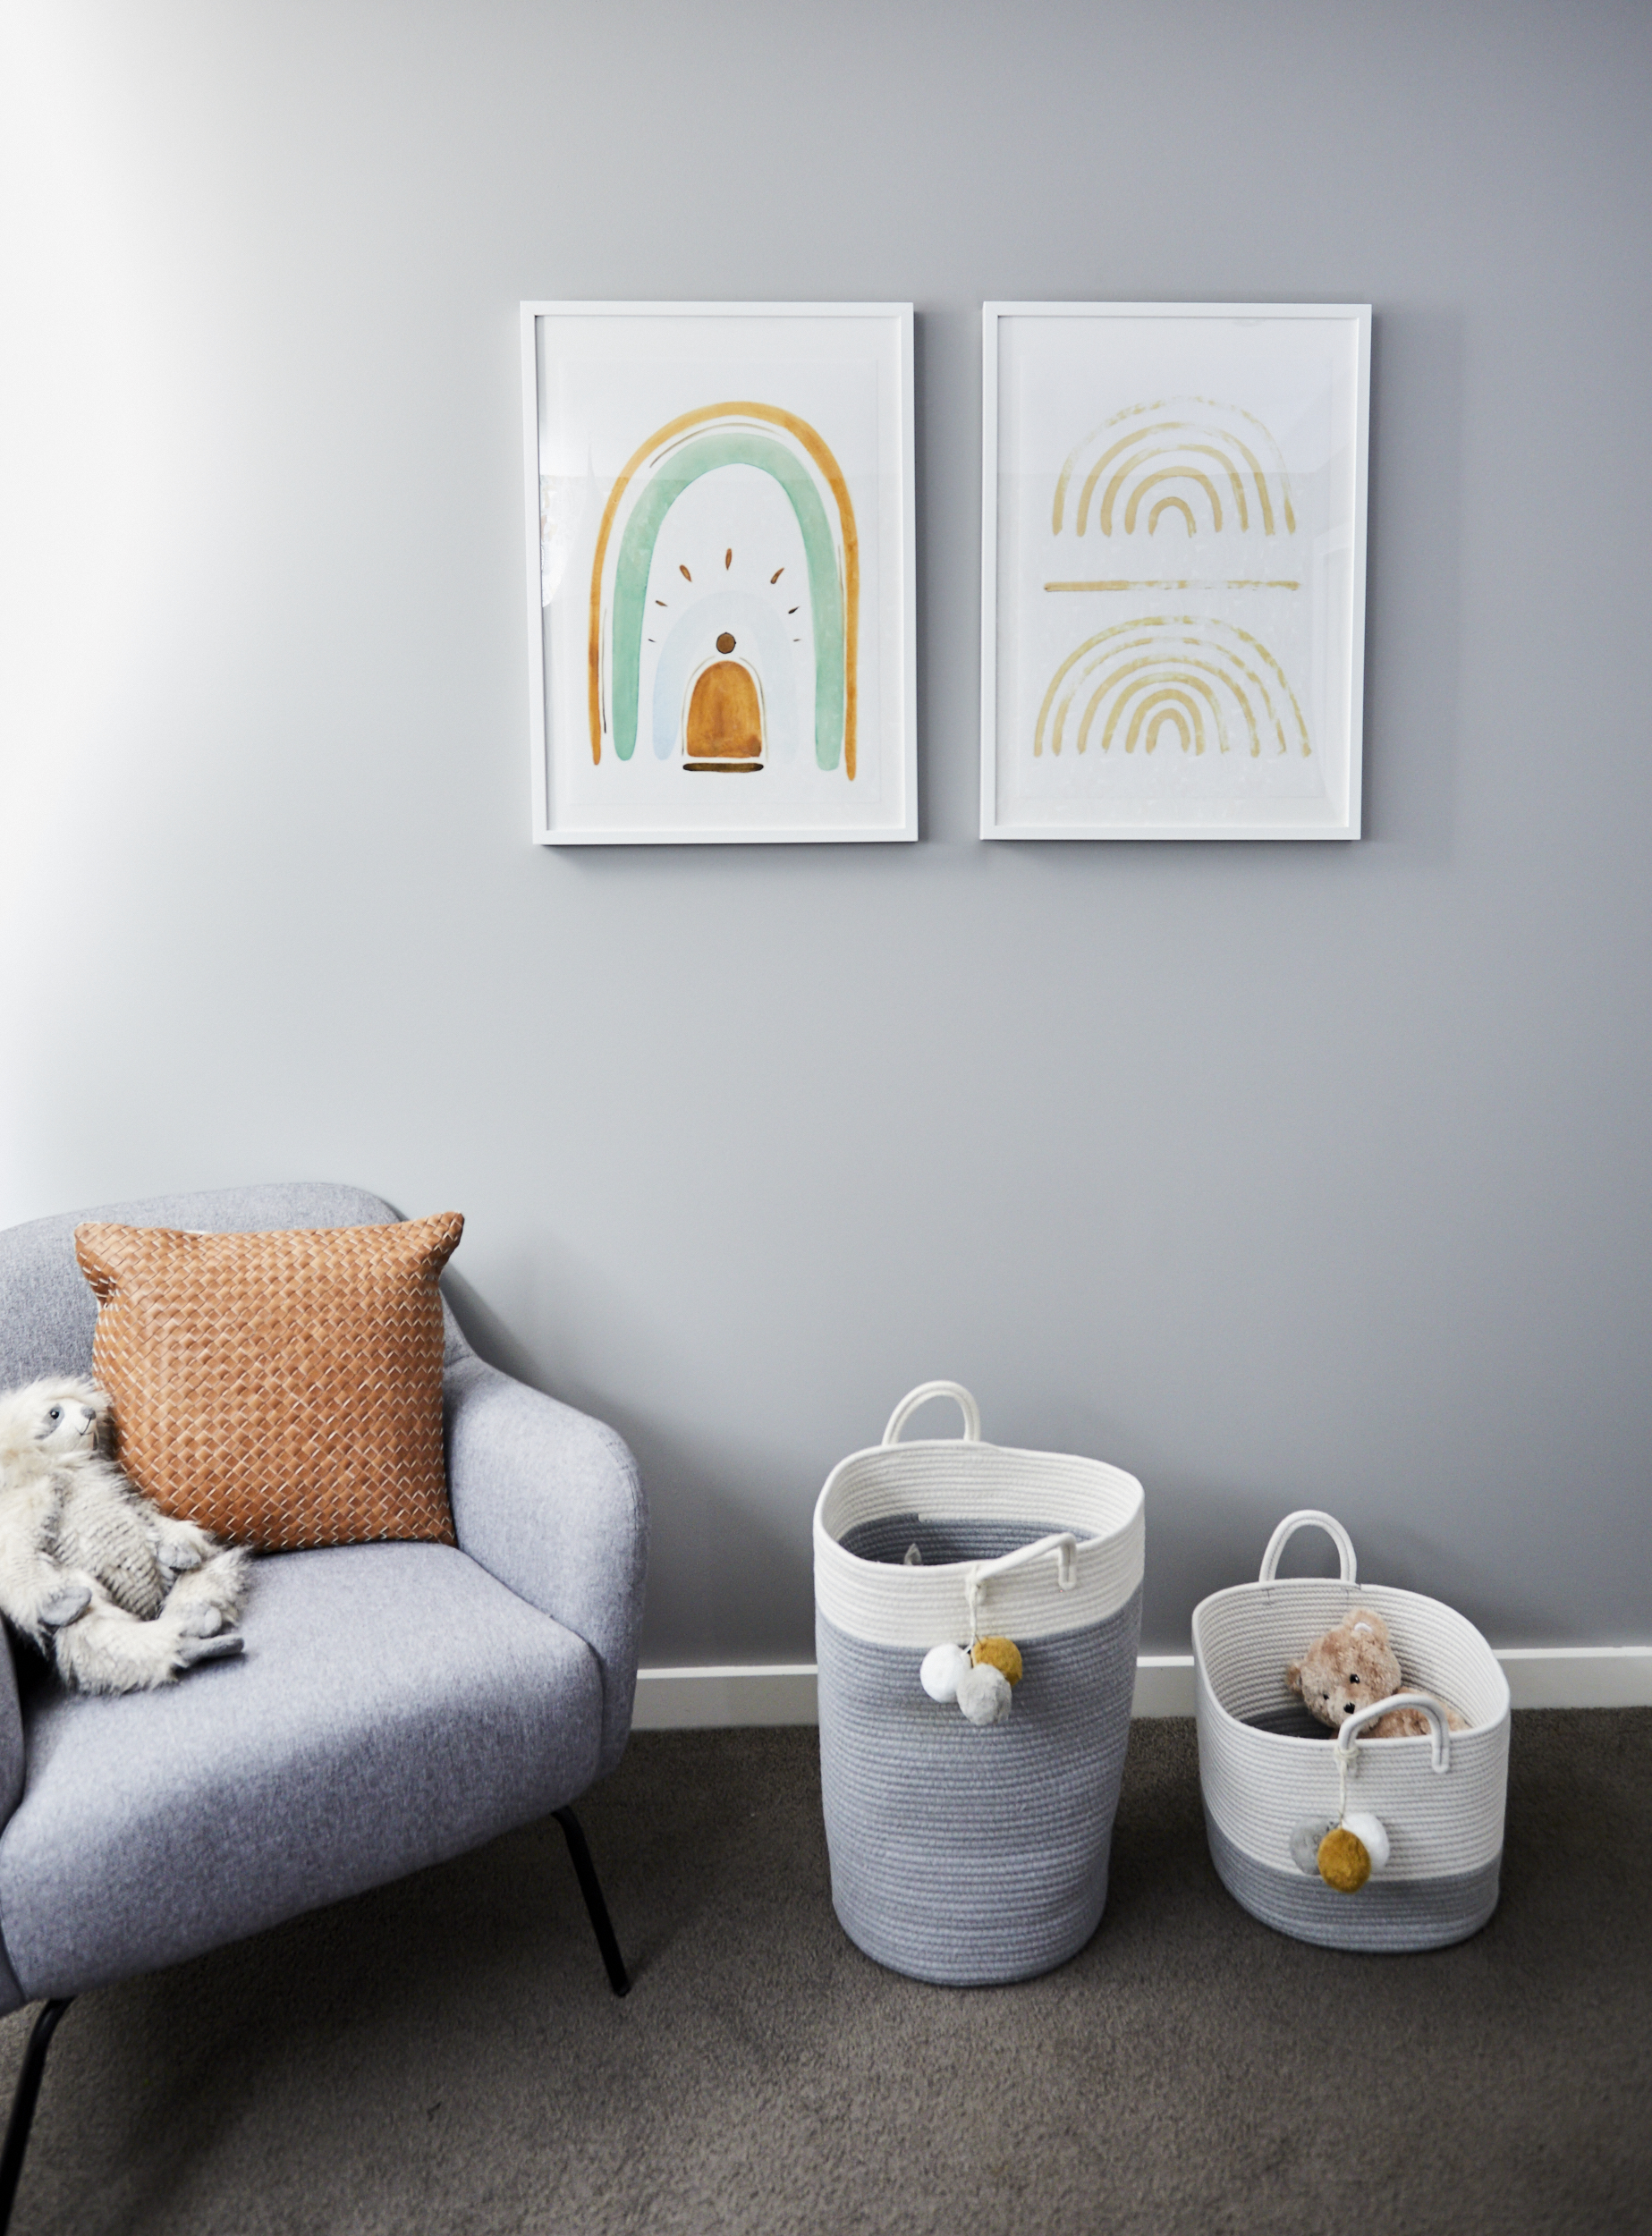 baby nursery_homeroom studio reveal_ grey and neutral armchair ad baskets